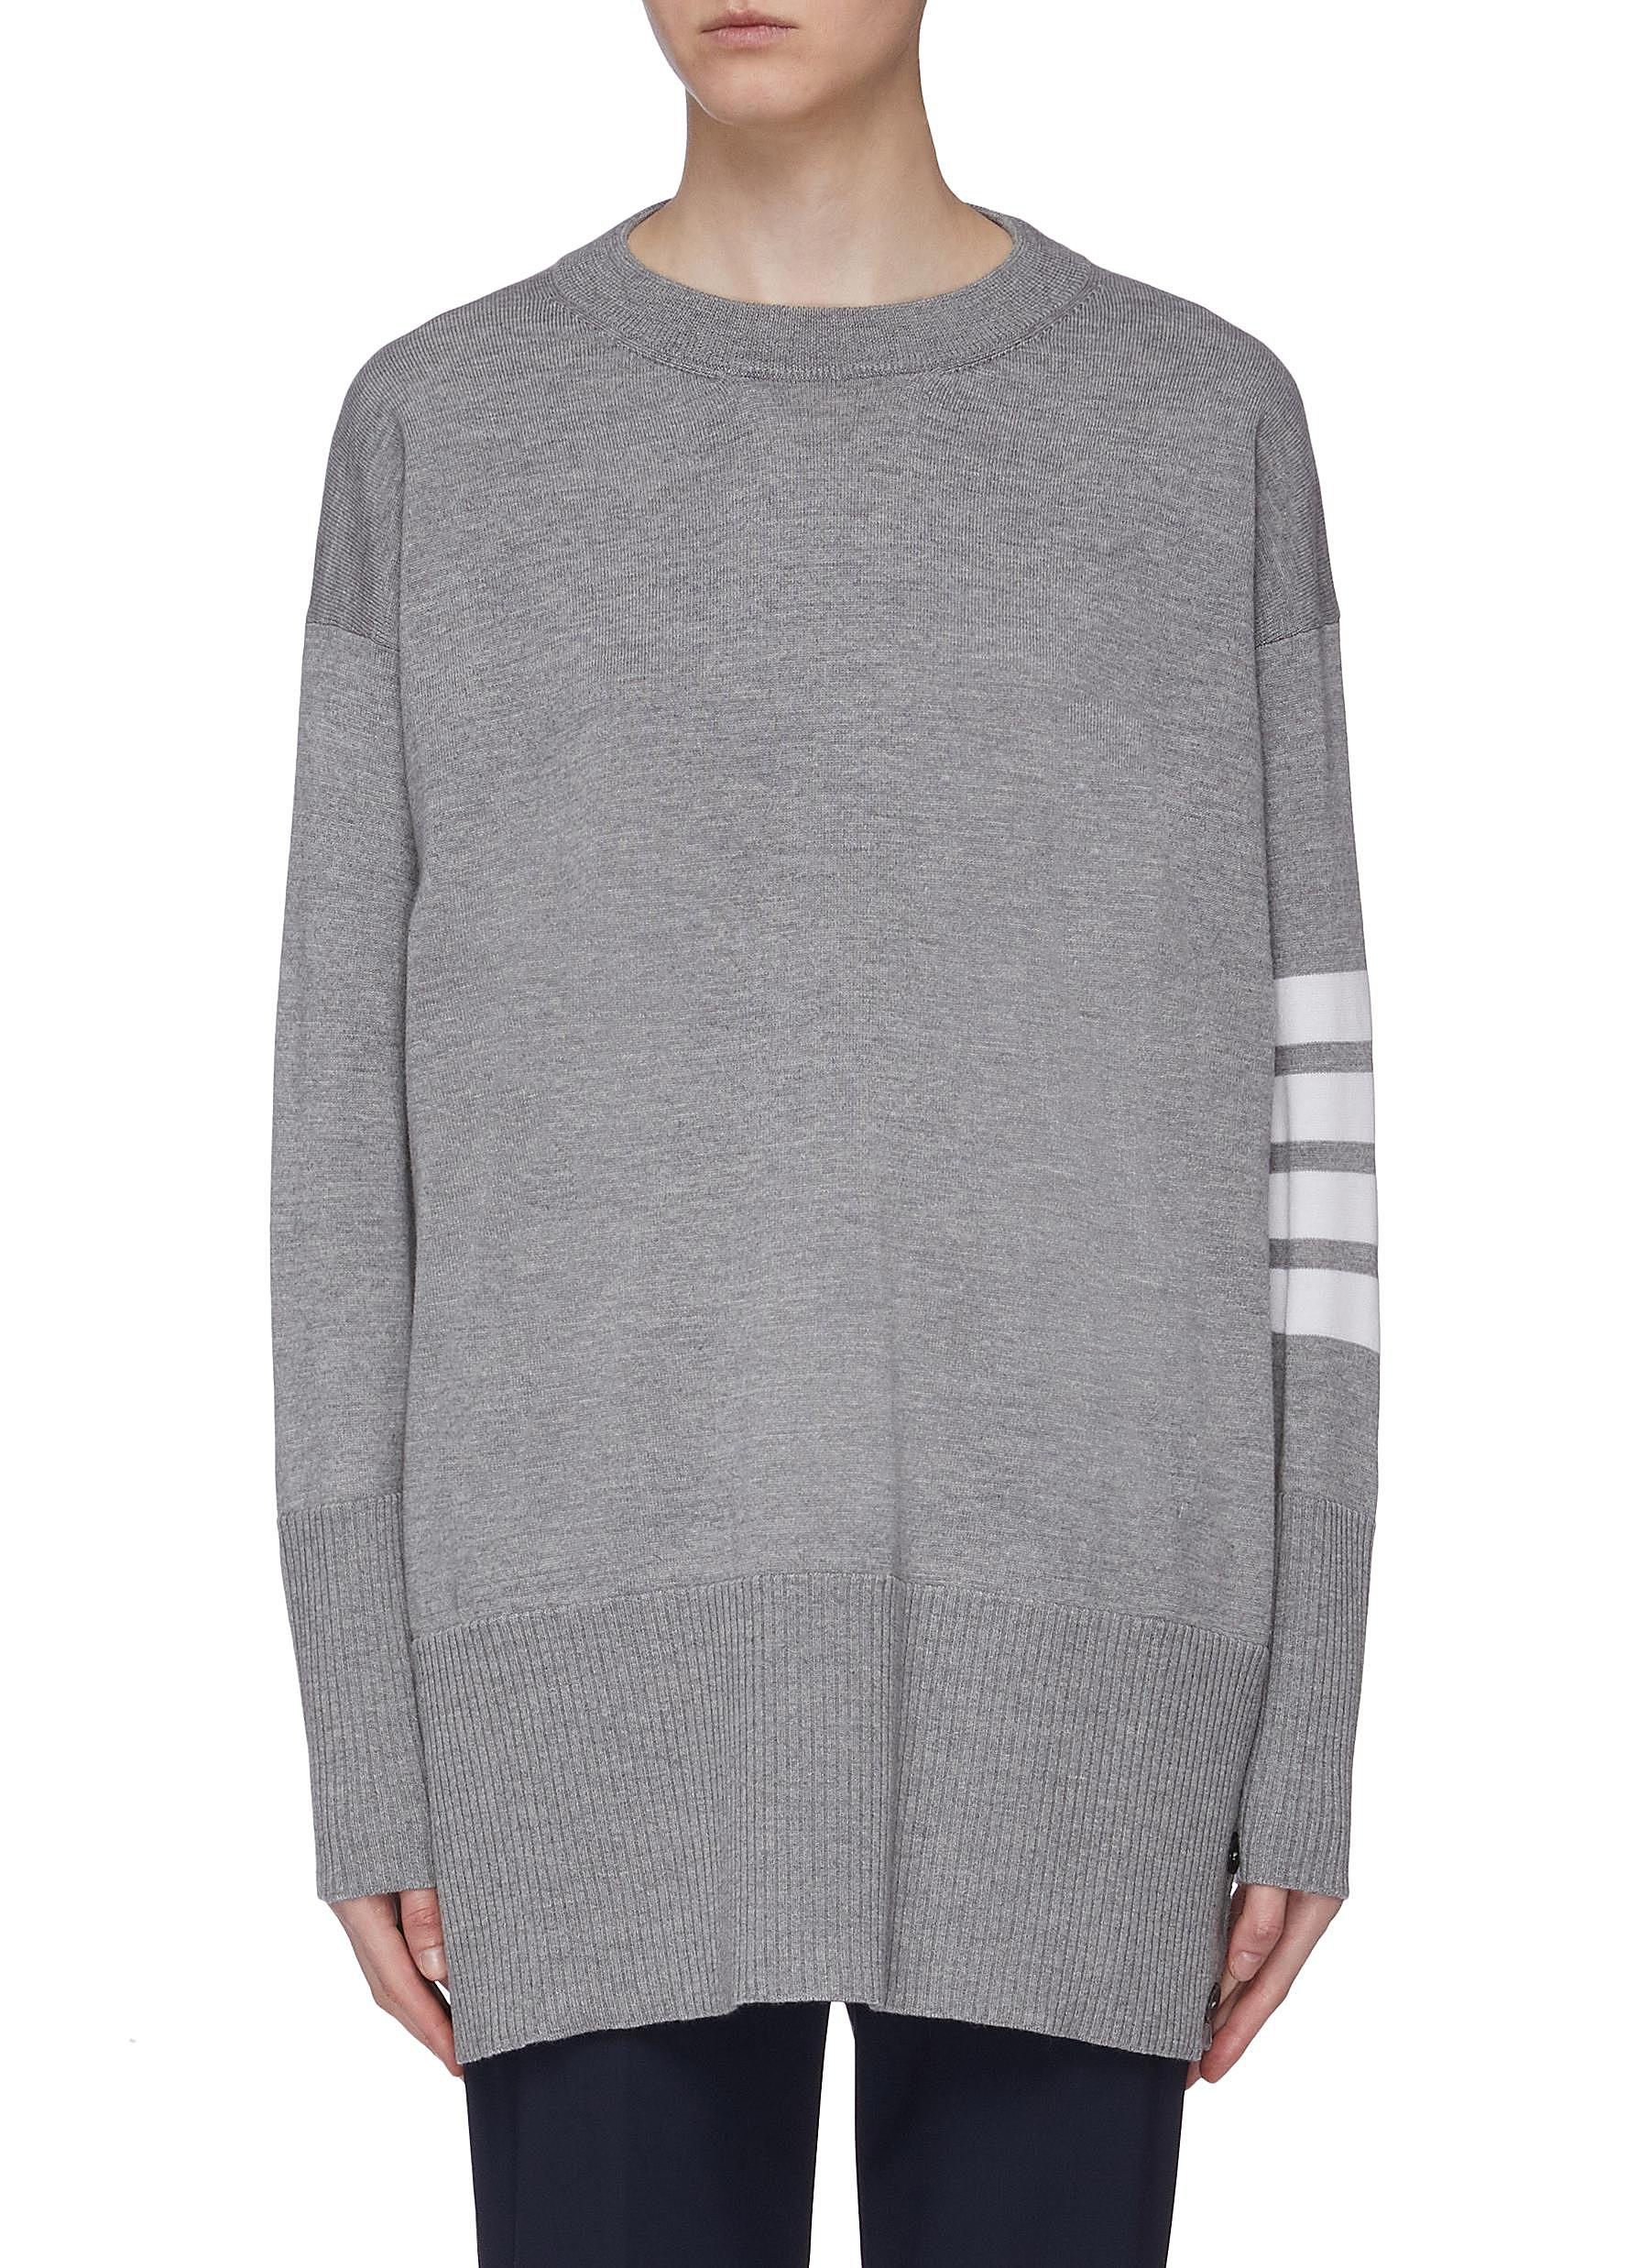 Stripe sleeve button cuff oversized wool sweater by Thom Browne